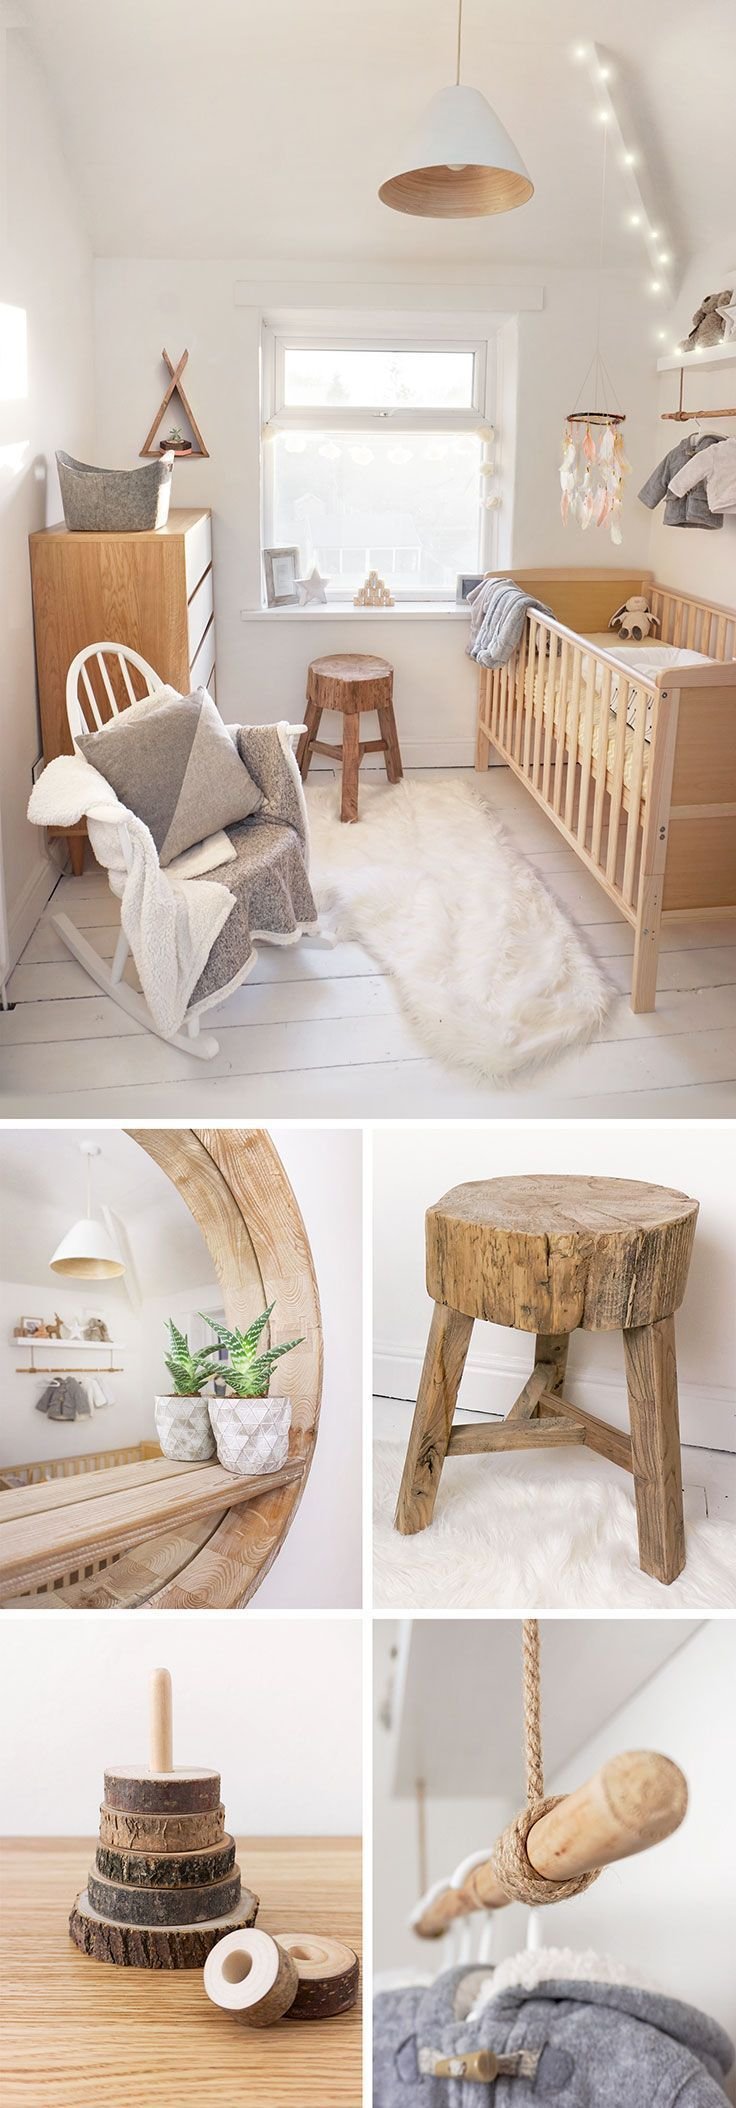 Scandi, Nordic, forest, ethnic, Native American nursery. With rocking chair, rustic wooden stool, circular wooden mirror, fur rug and Scandinavian style furniture. This baby room comes with a wooden bed and a clothes rail